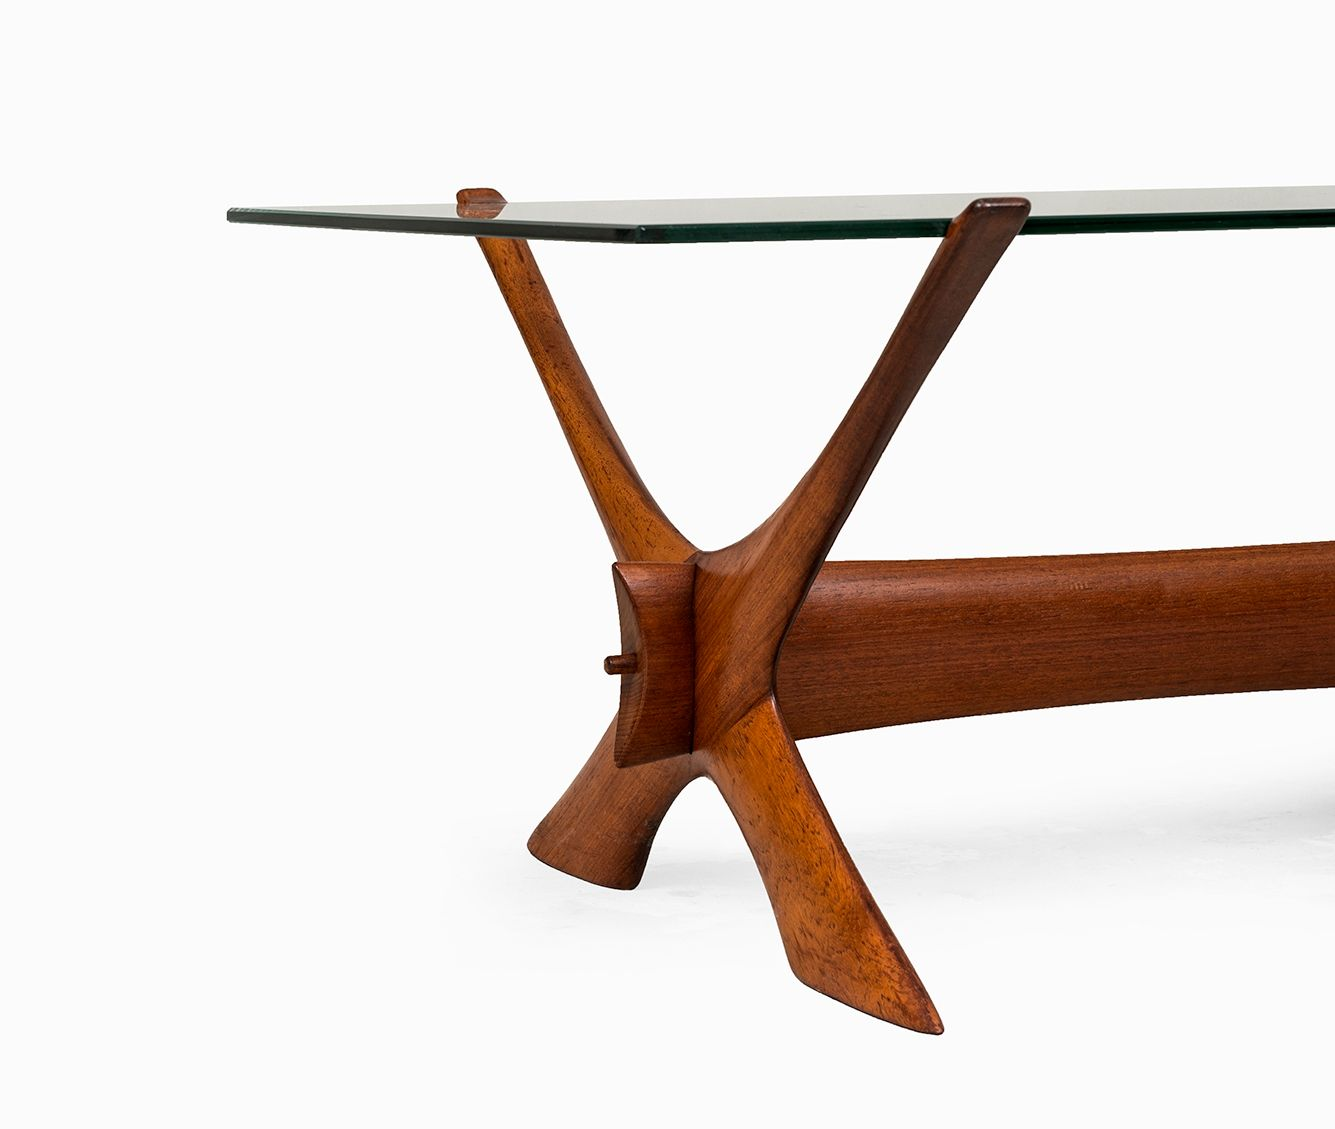 Fredriks Couchtisch Two Colour Condor Coffee Table By Fredrik Schriever Abeln For Örebro Glas Sweden 1960s